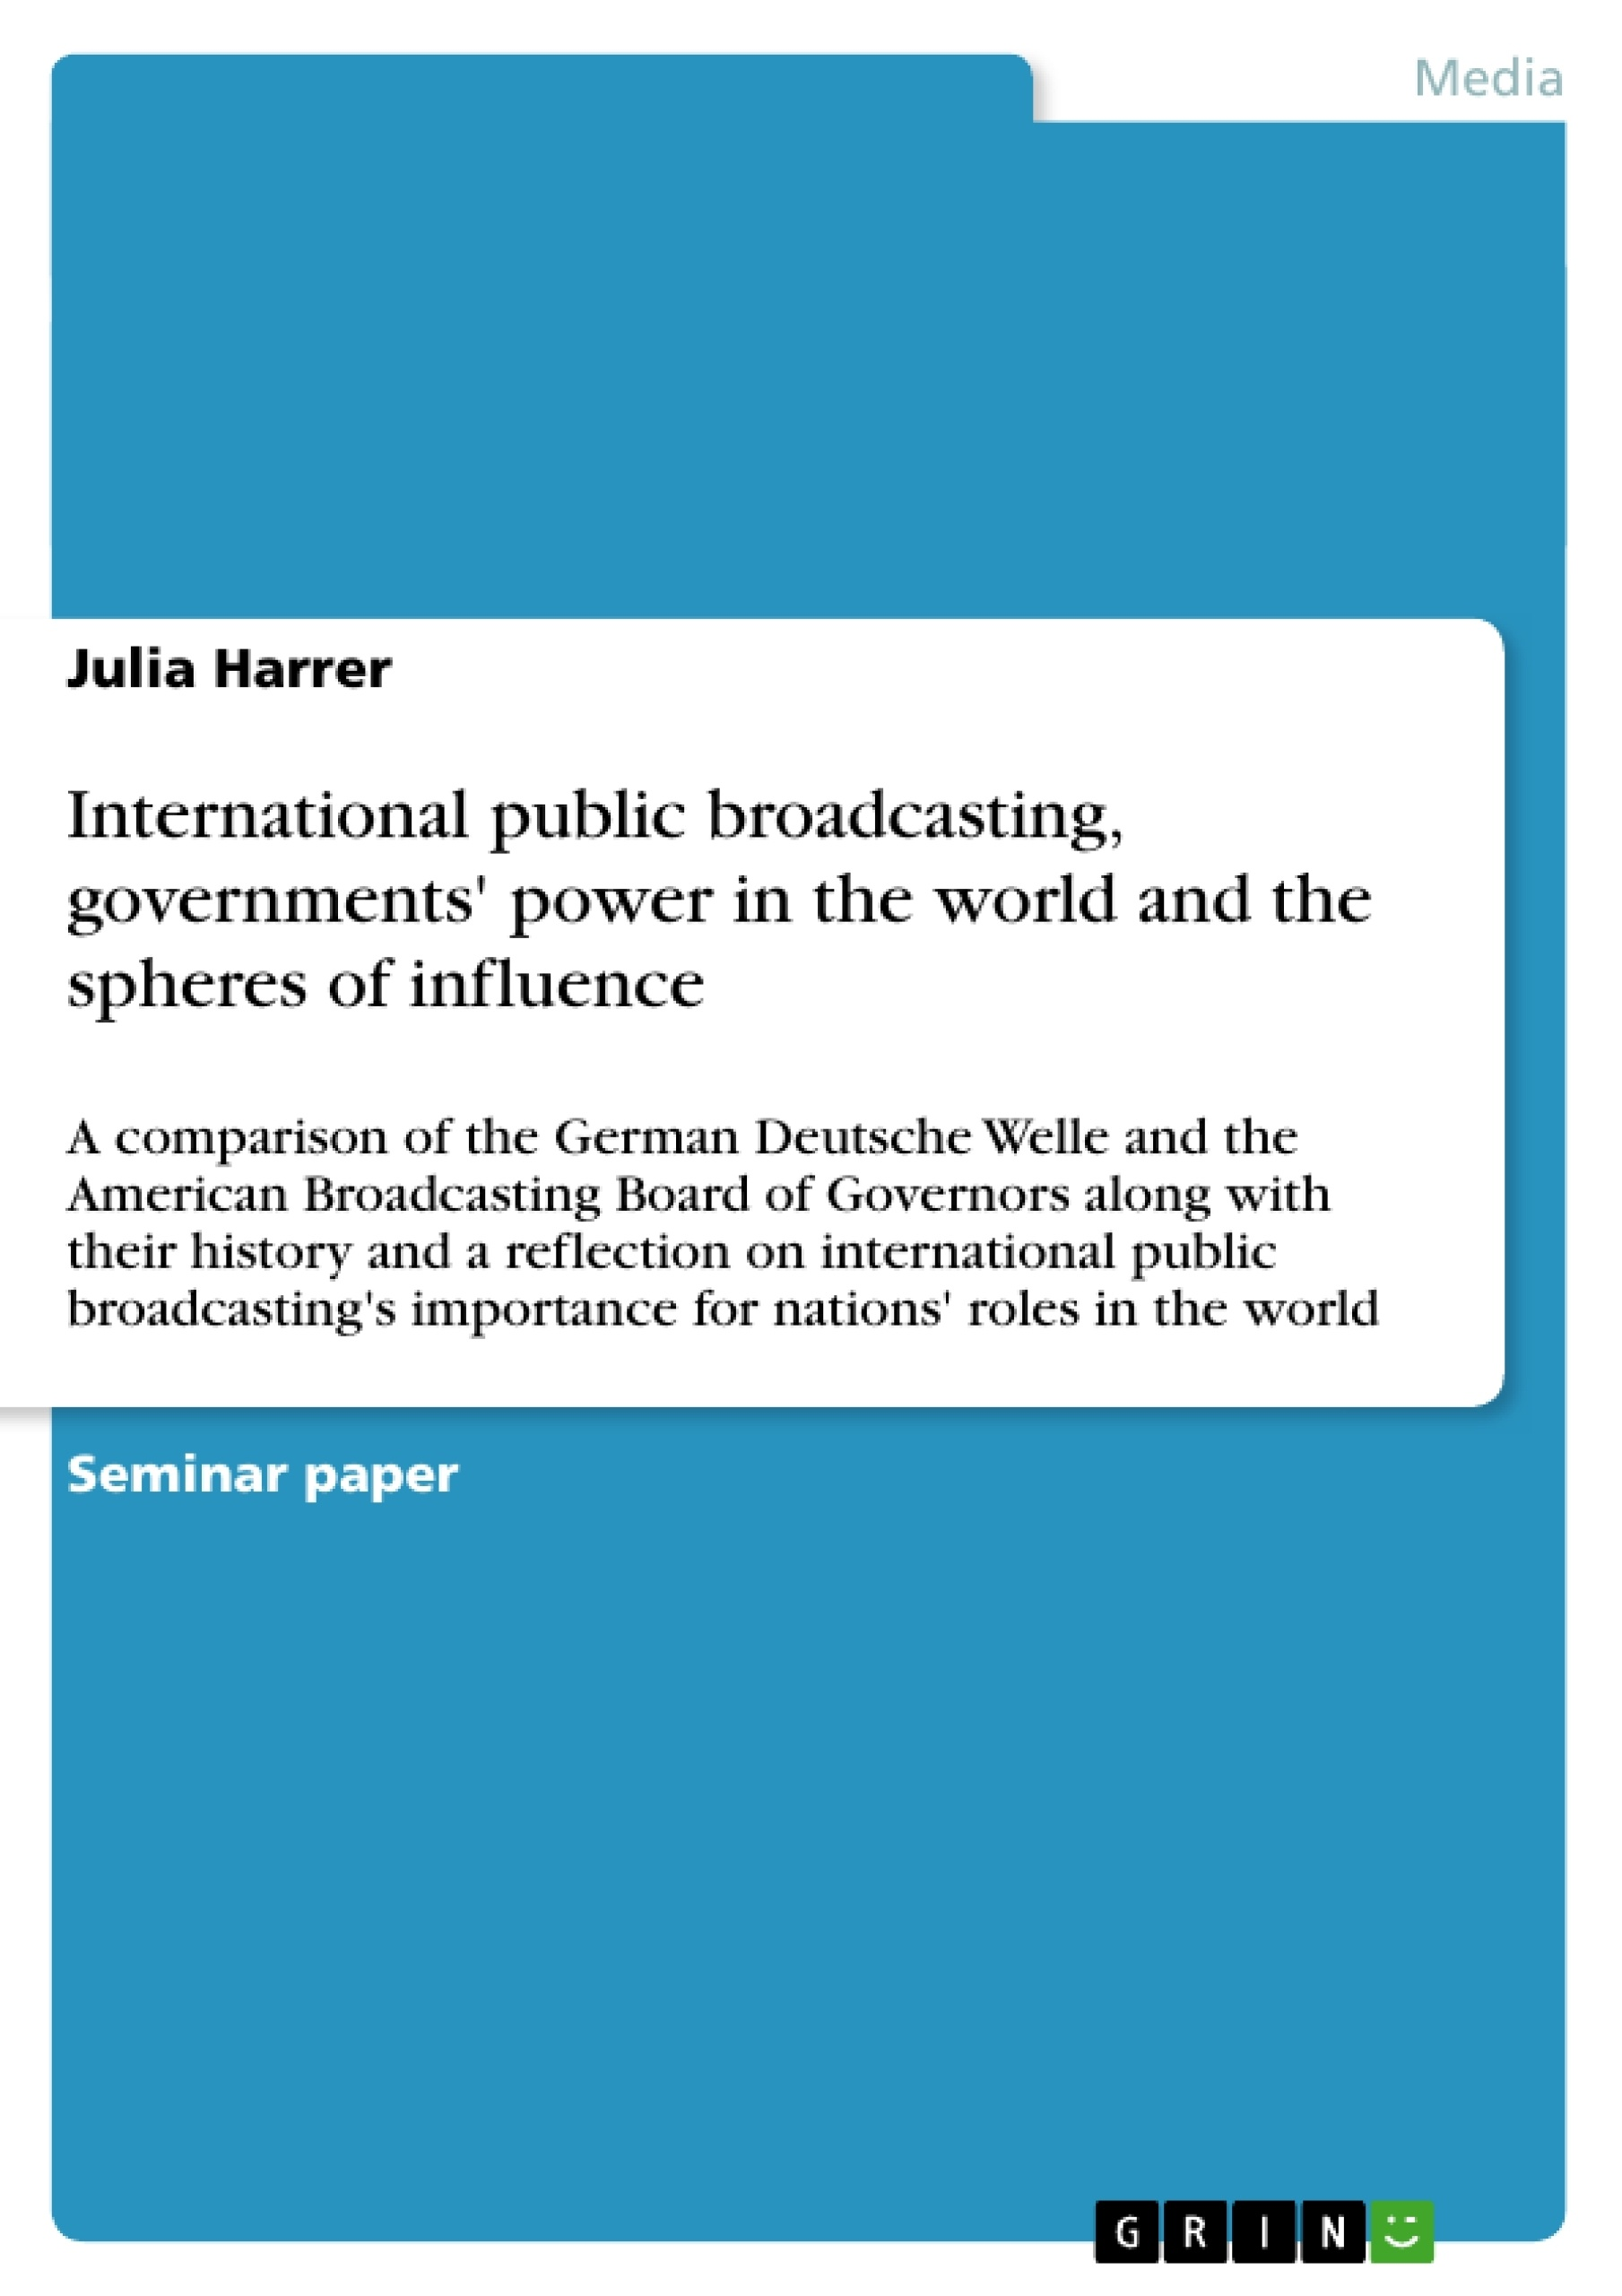 Title: International public broadcasting, governments' power in the world and the spheres of influence